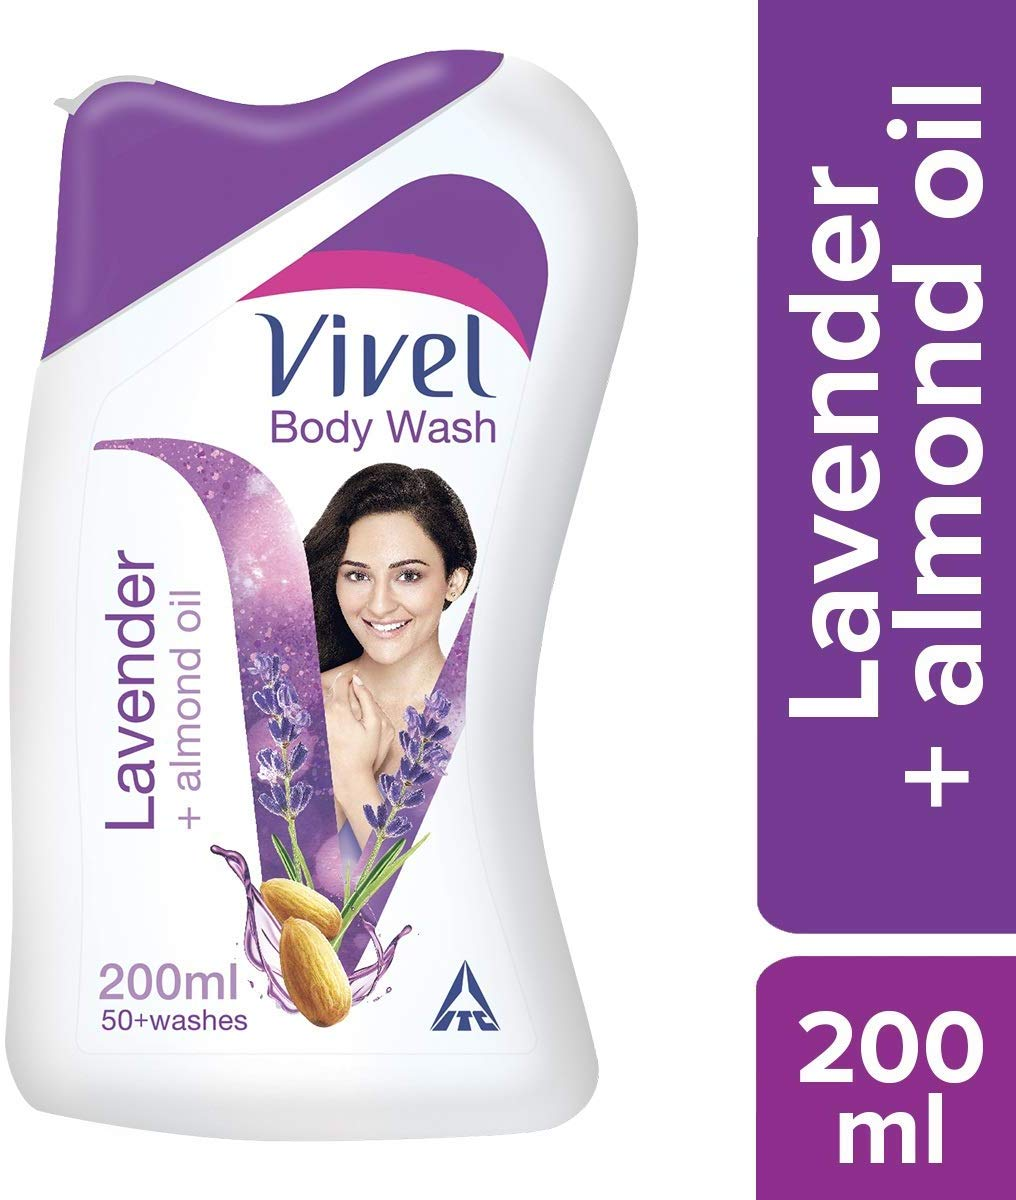 Vivel Body Wash, Lavender and Almond Oil, 200ml with Free Vivel Loofah